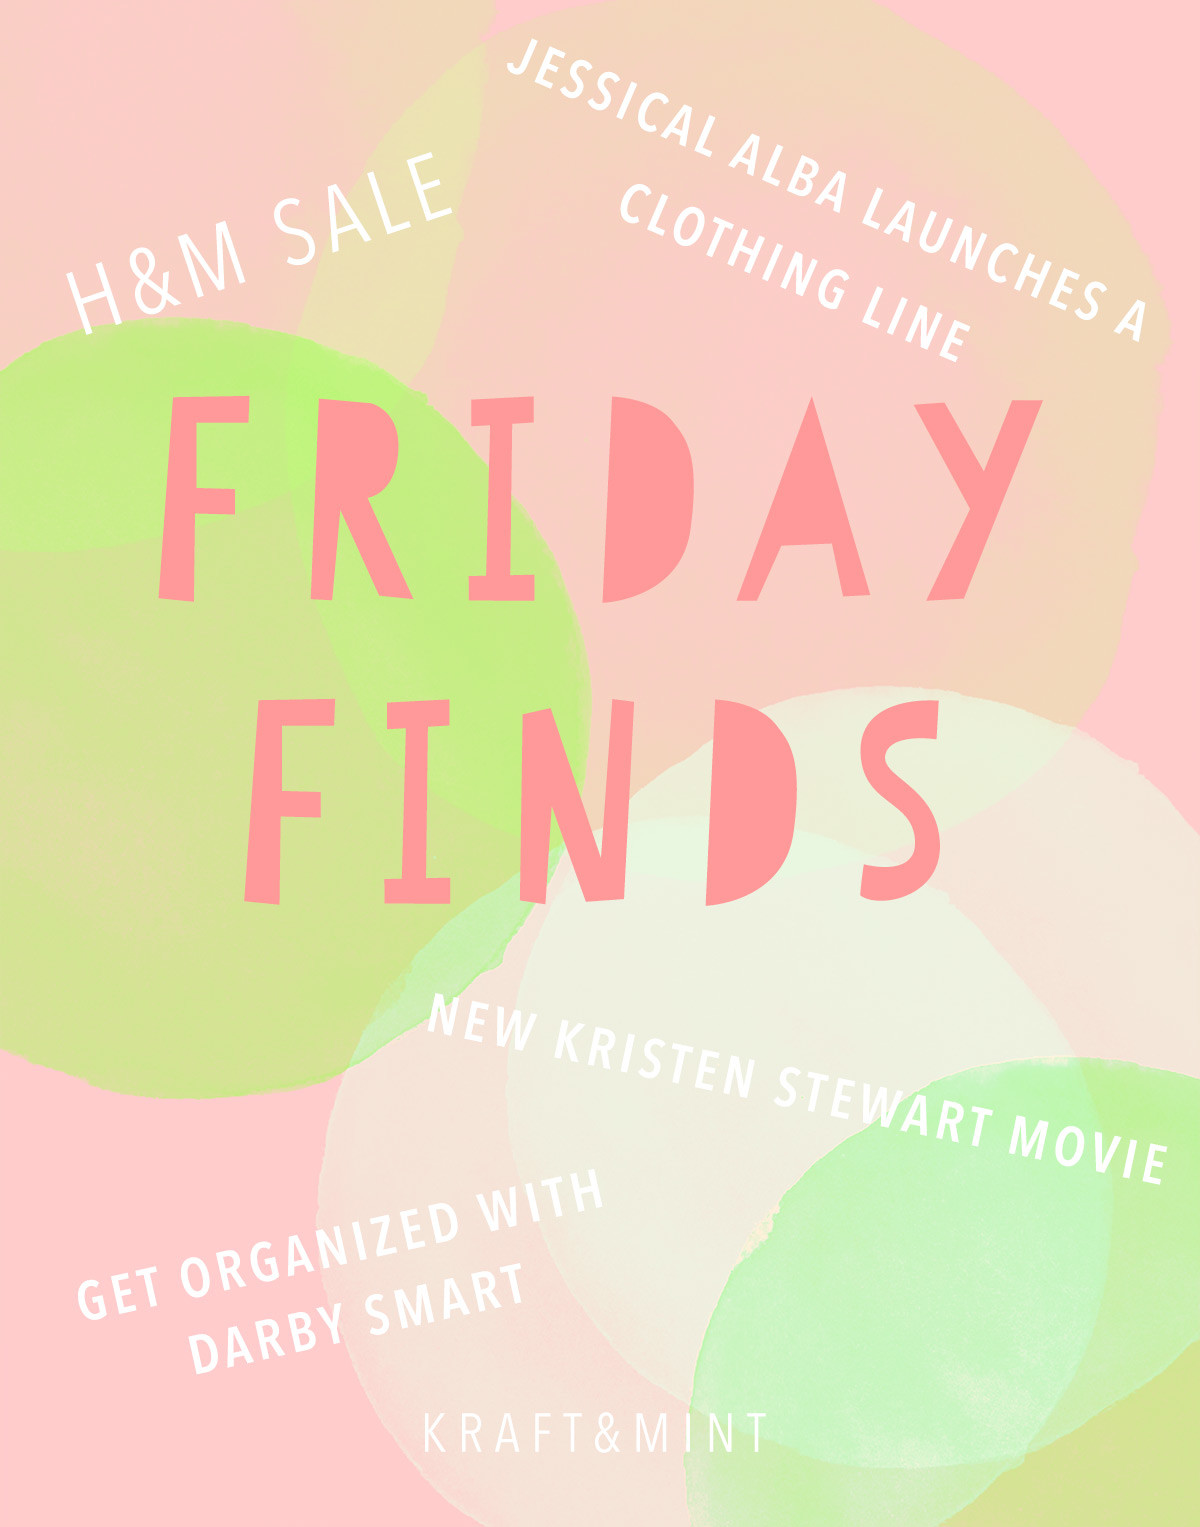 Friday Finds - H&M Sale, Jessica Alba Launches clothing line, New Kristen Stewart movie and more kraft&mint